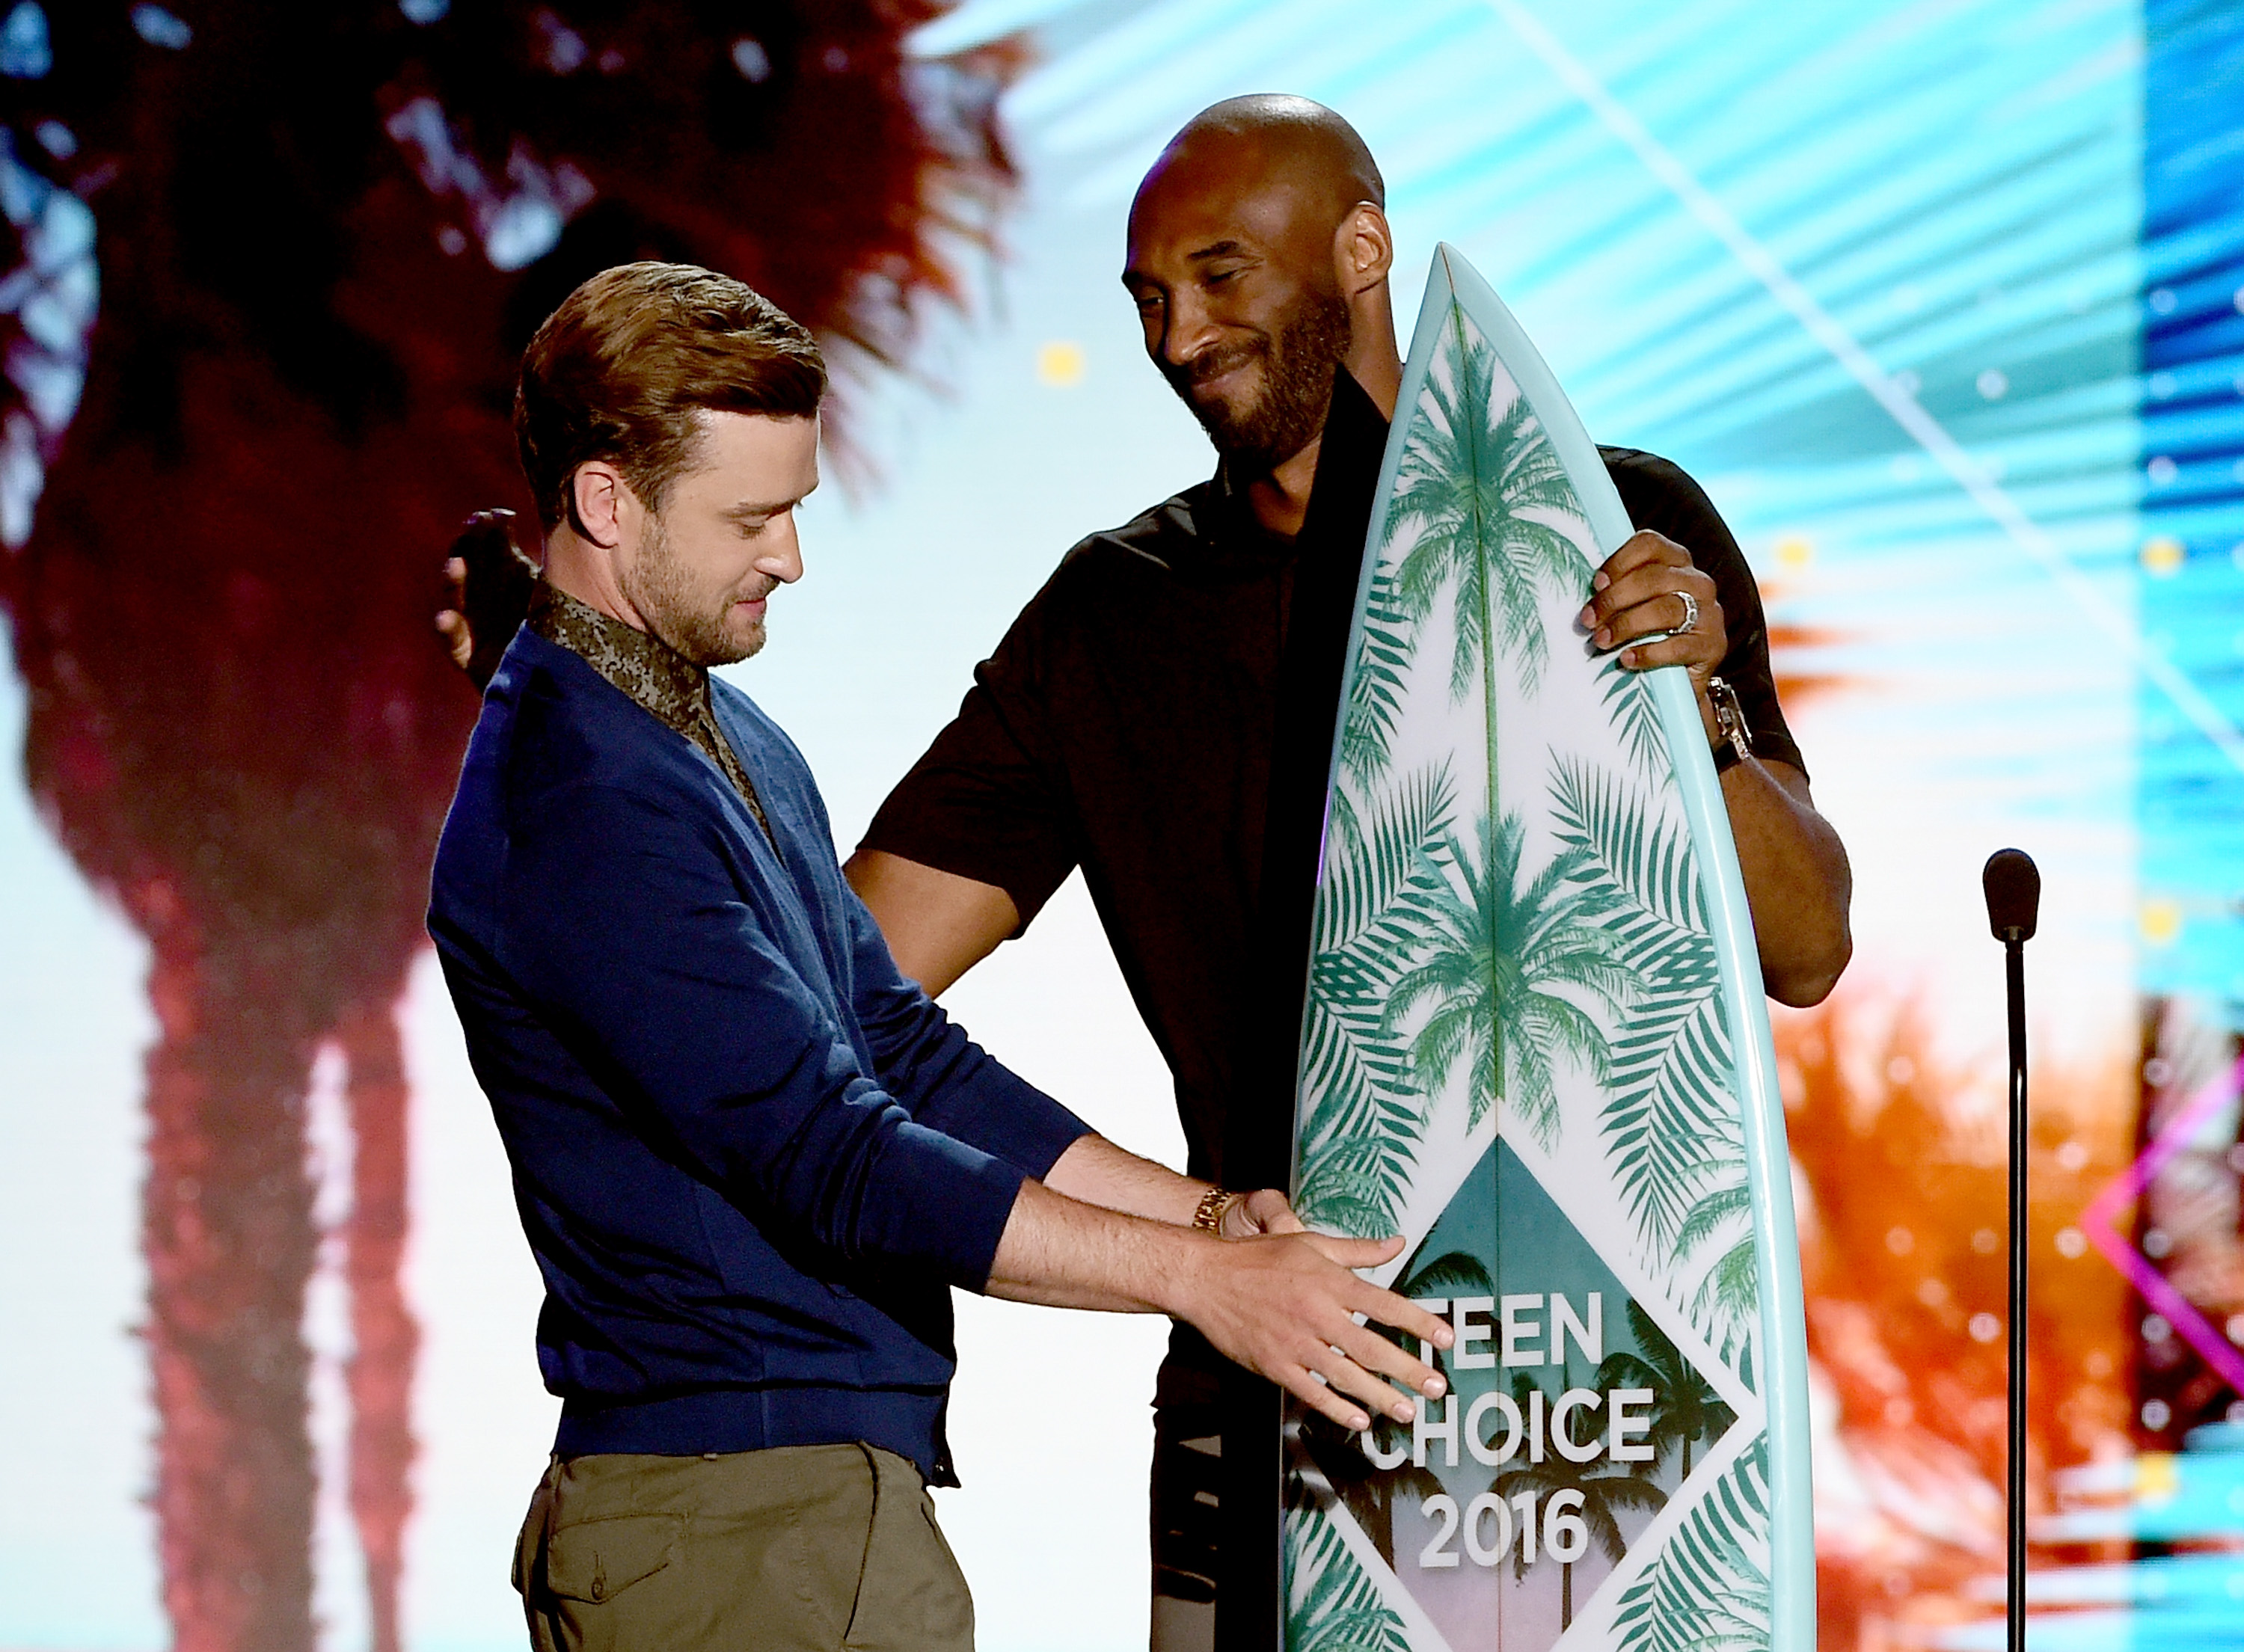 WATCH: Justin Timberlake gives powerful speech at Teen Choice Awards as he wins Decade Award